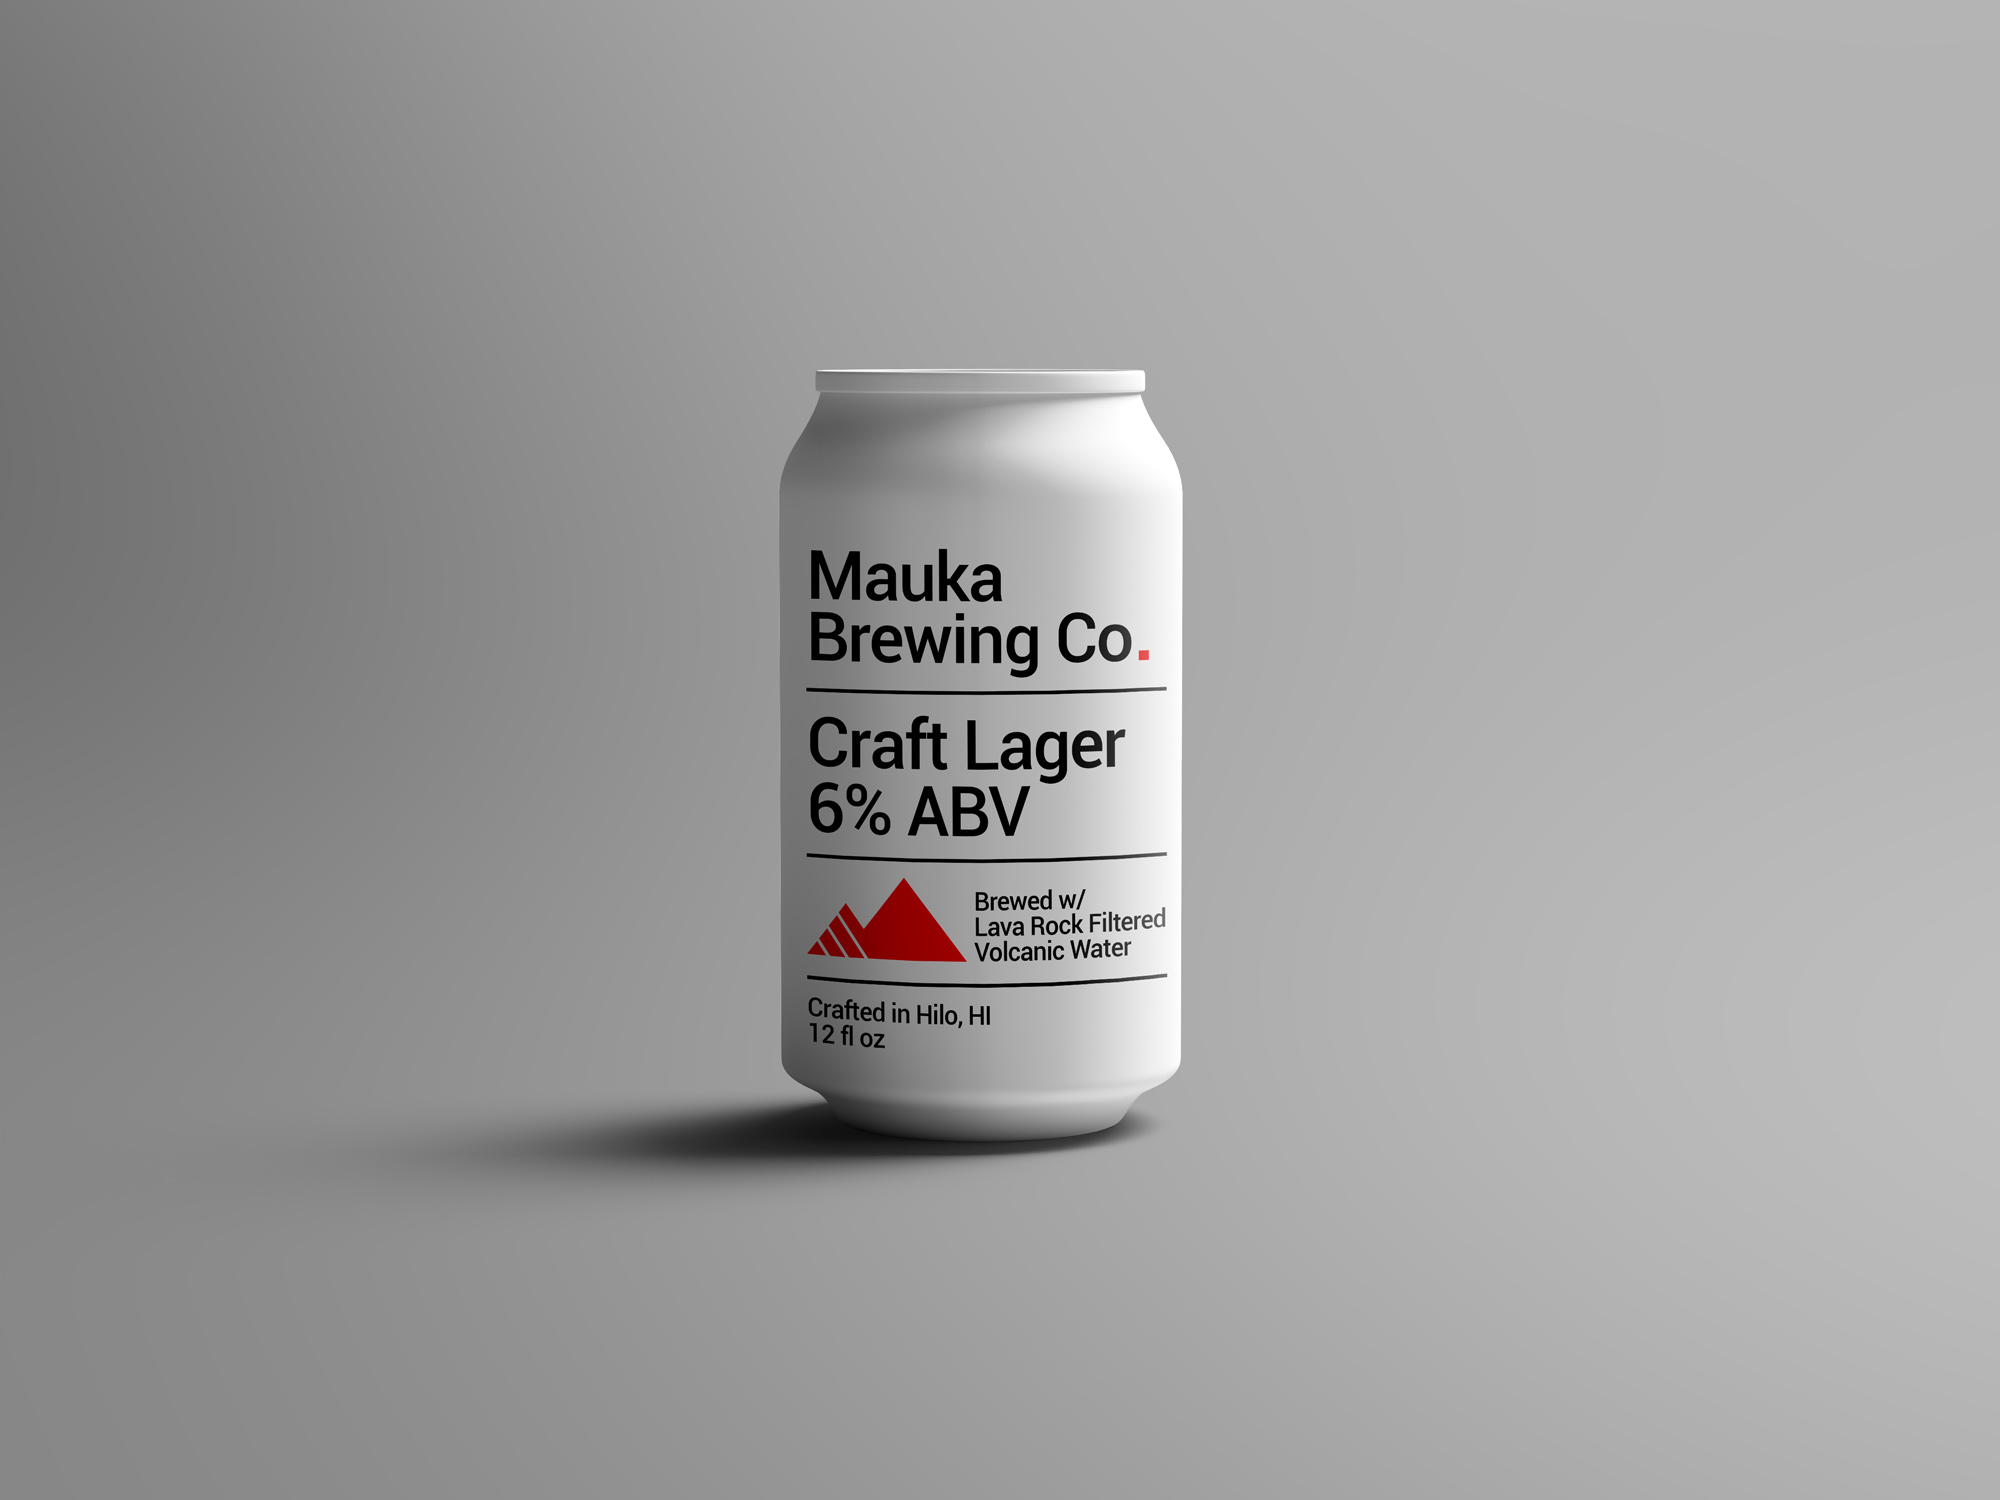 MakuaBrewingCo_BeerCan_MockUp_Lager